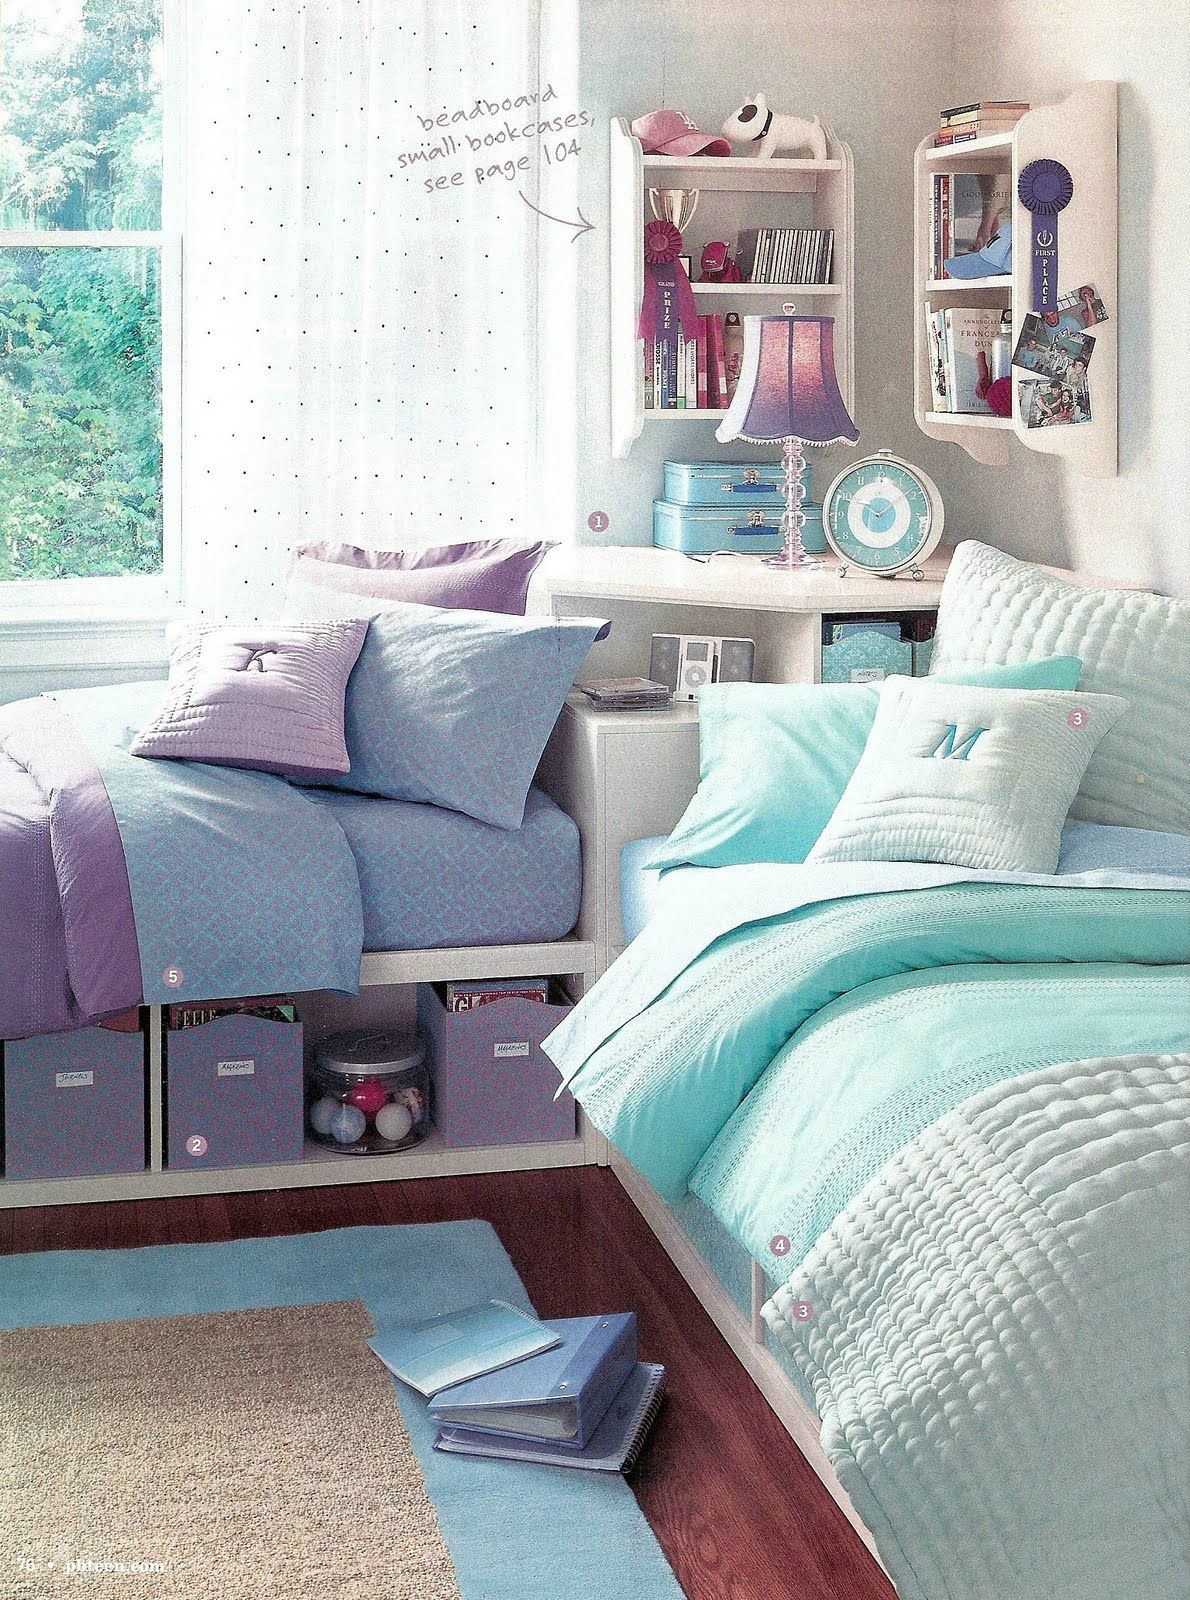 Designs For Girls Rooms: Little Inspirations: Sharing A Room